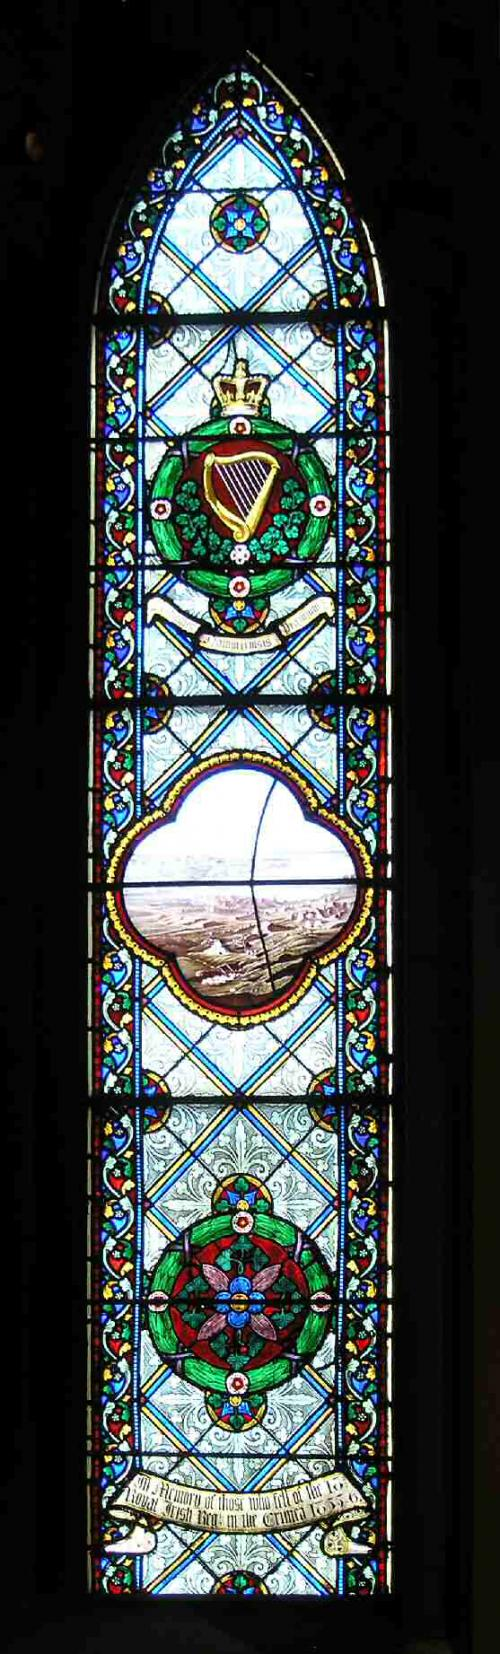 Royal Irish Regiment Crimea window